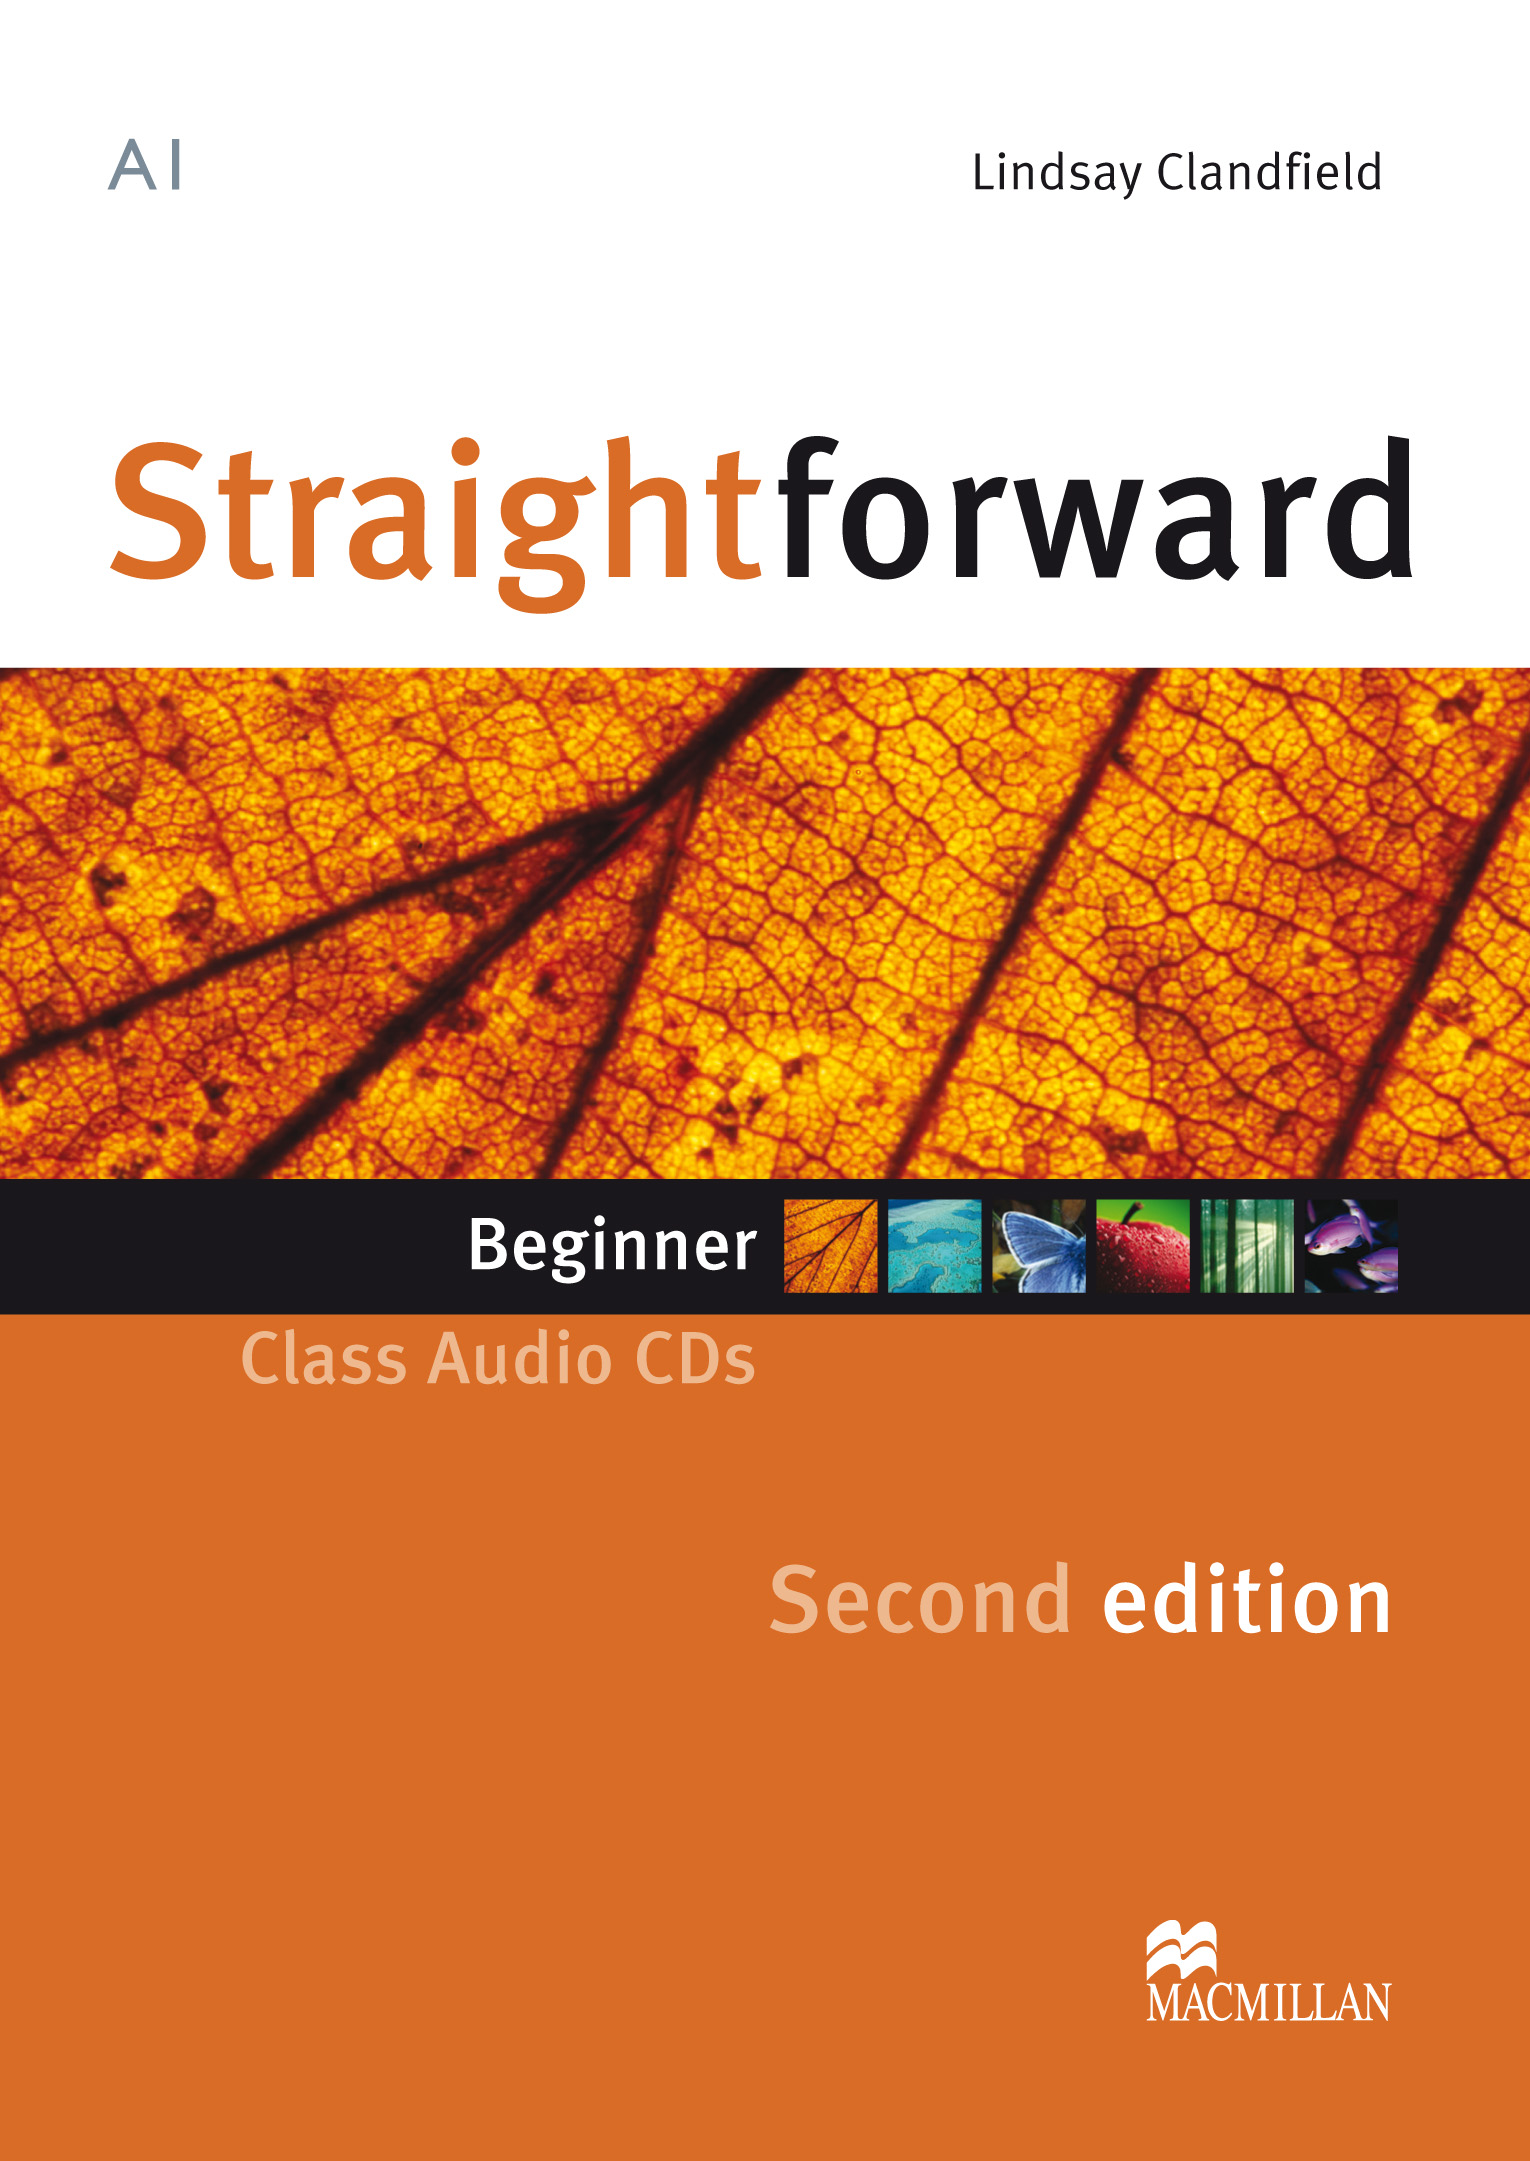 Straightforward Second Edition Beginner Class Audio CD